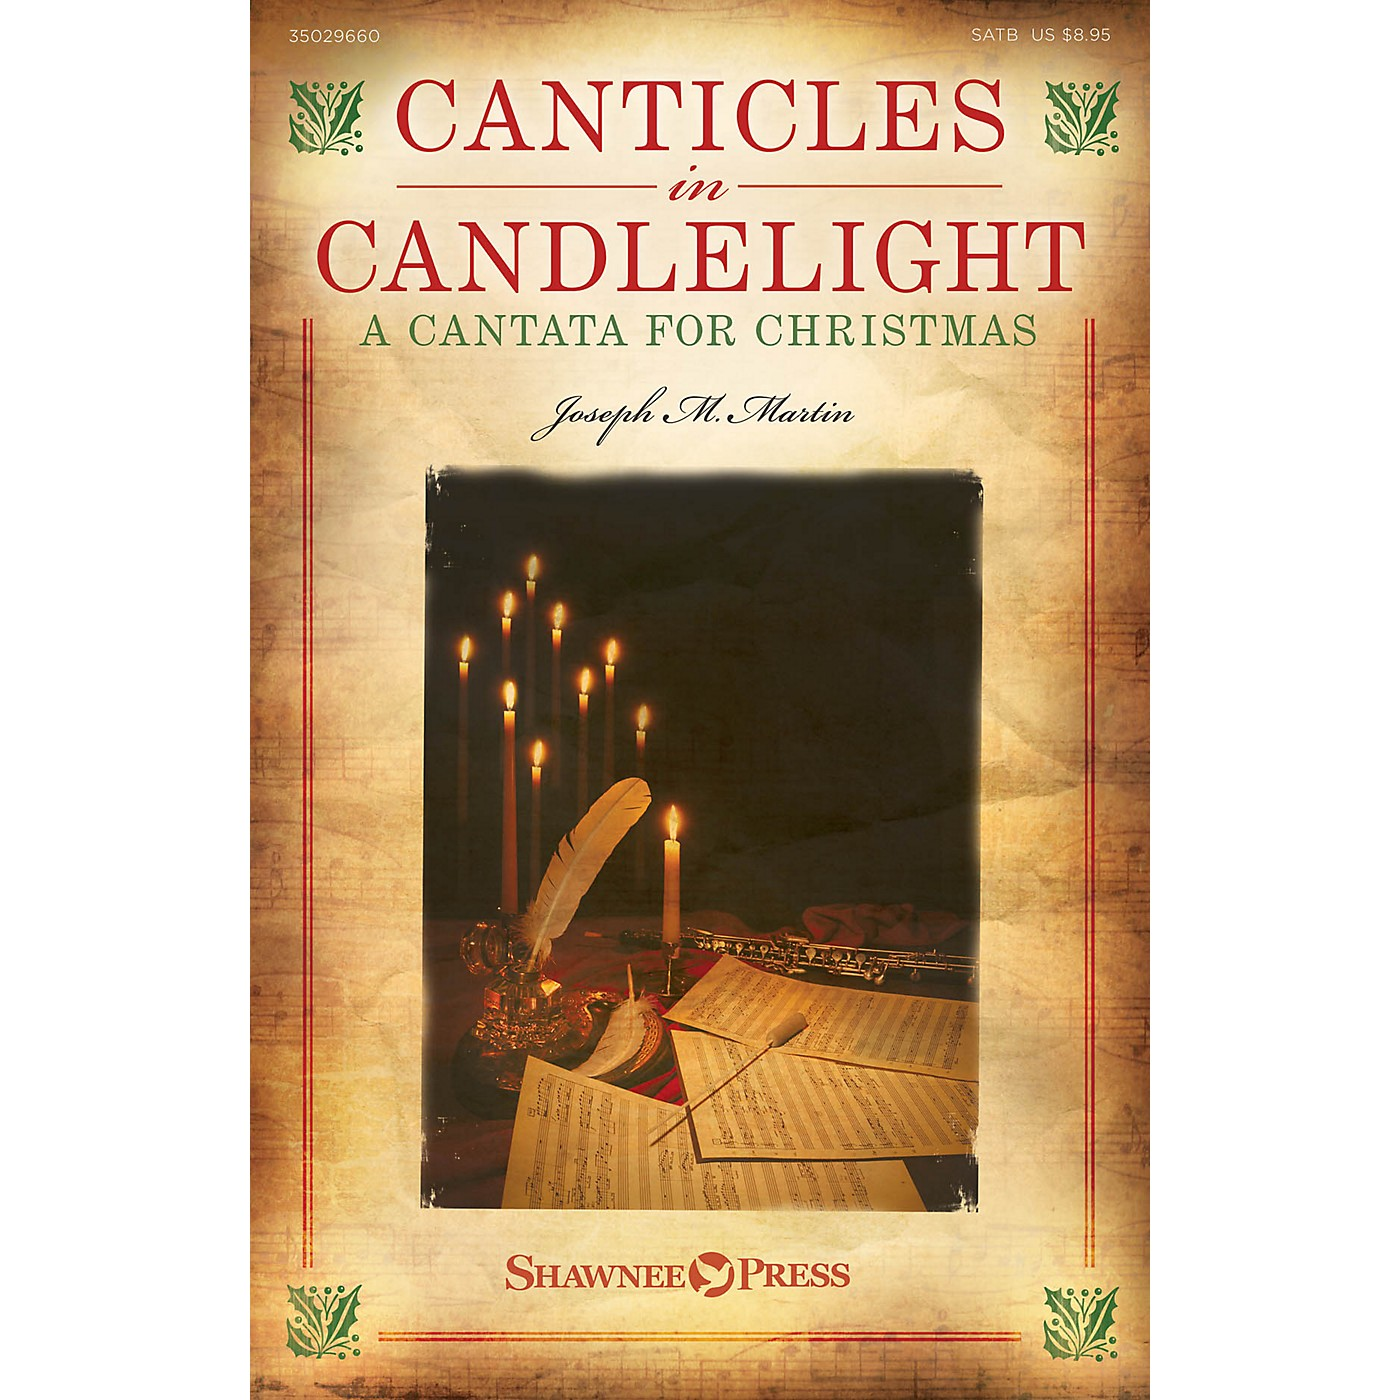 Shawnee Press Canticles in Candlelight (A Cantata for Christmas) CD 10-PAK Composed by Joseph M. Martin thumbnail